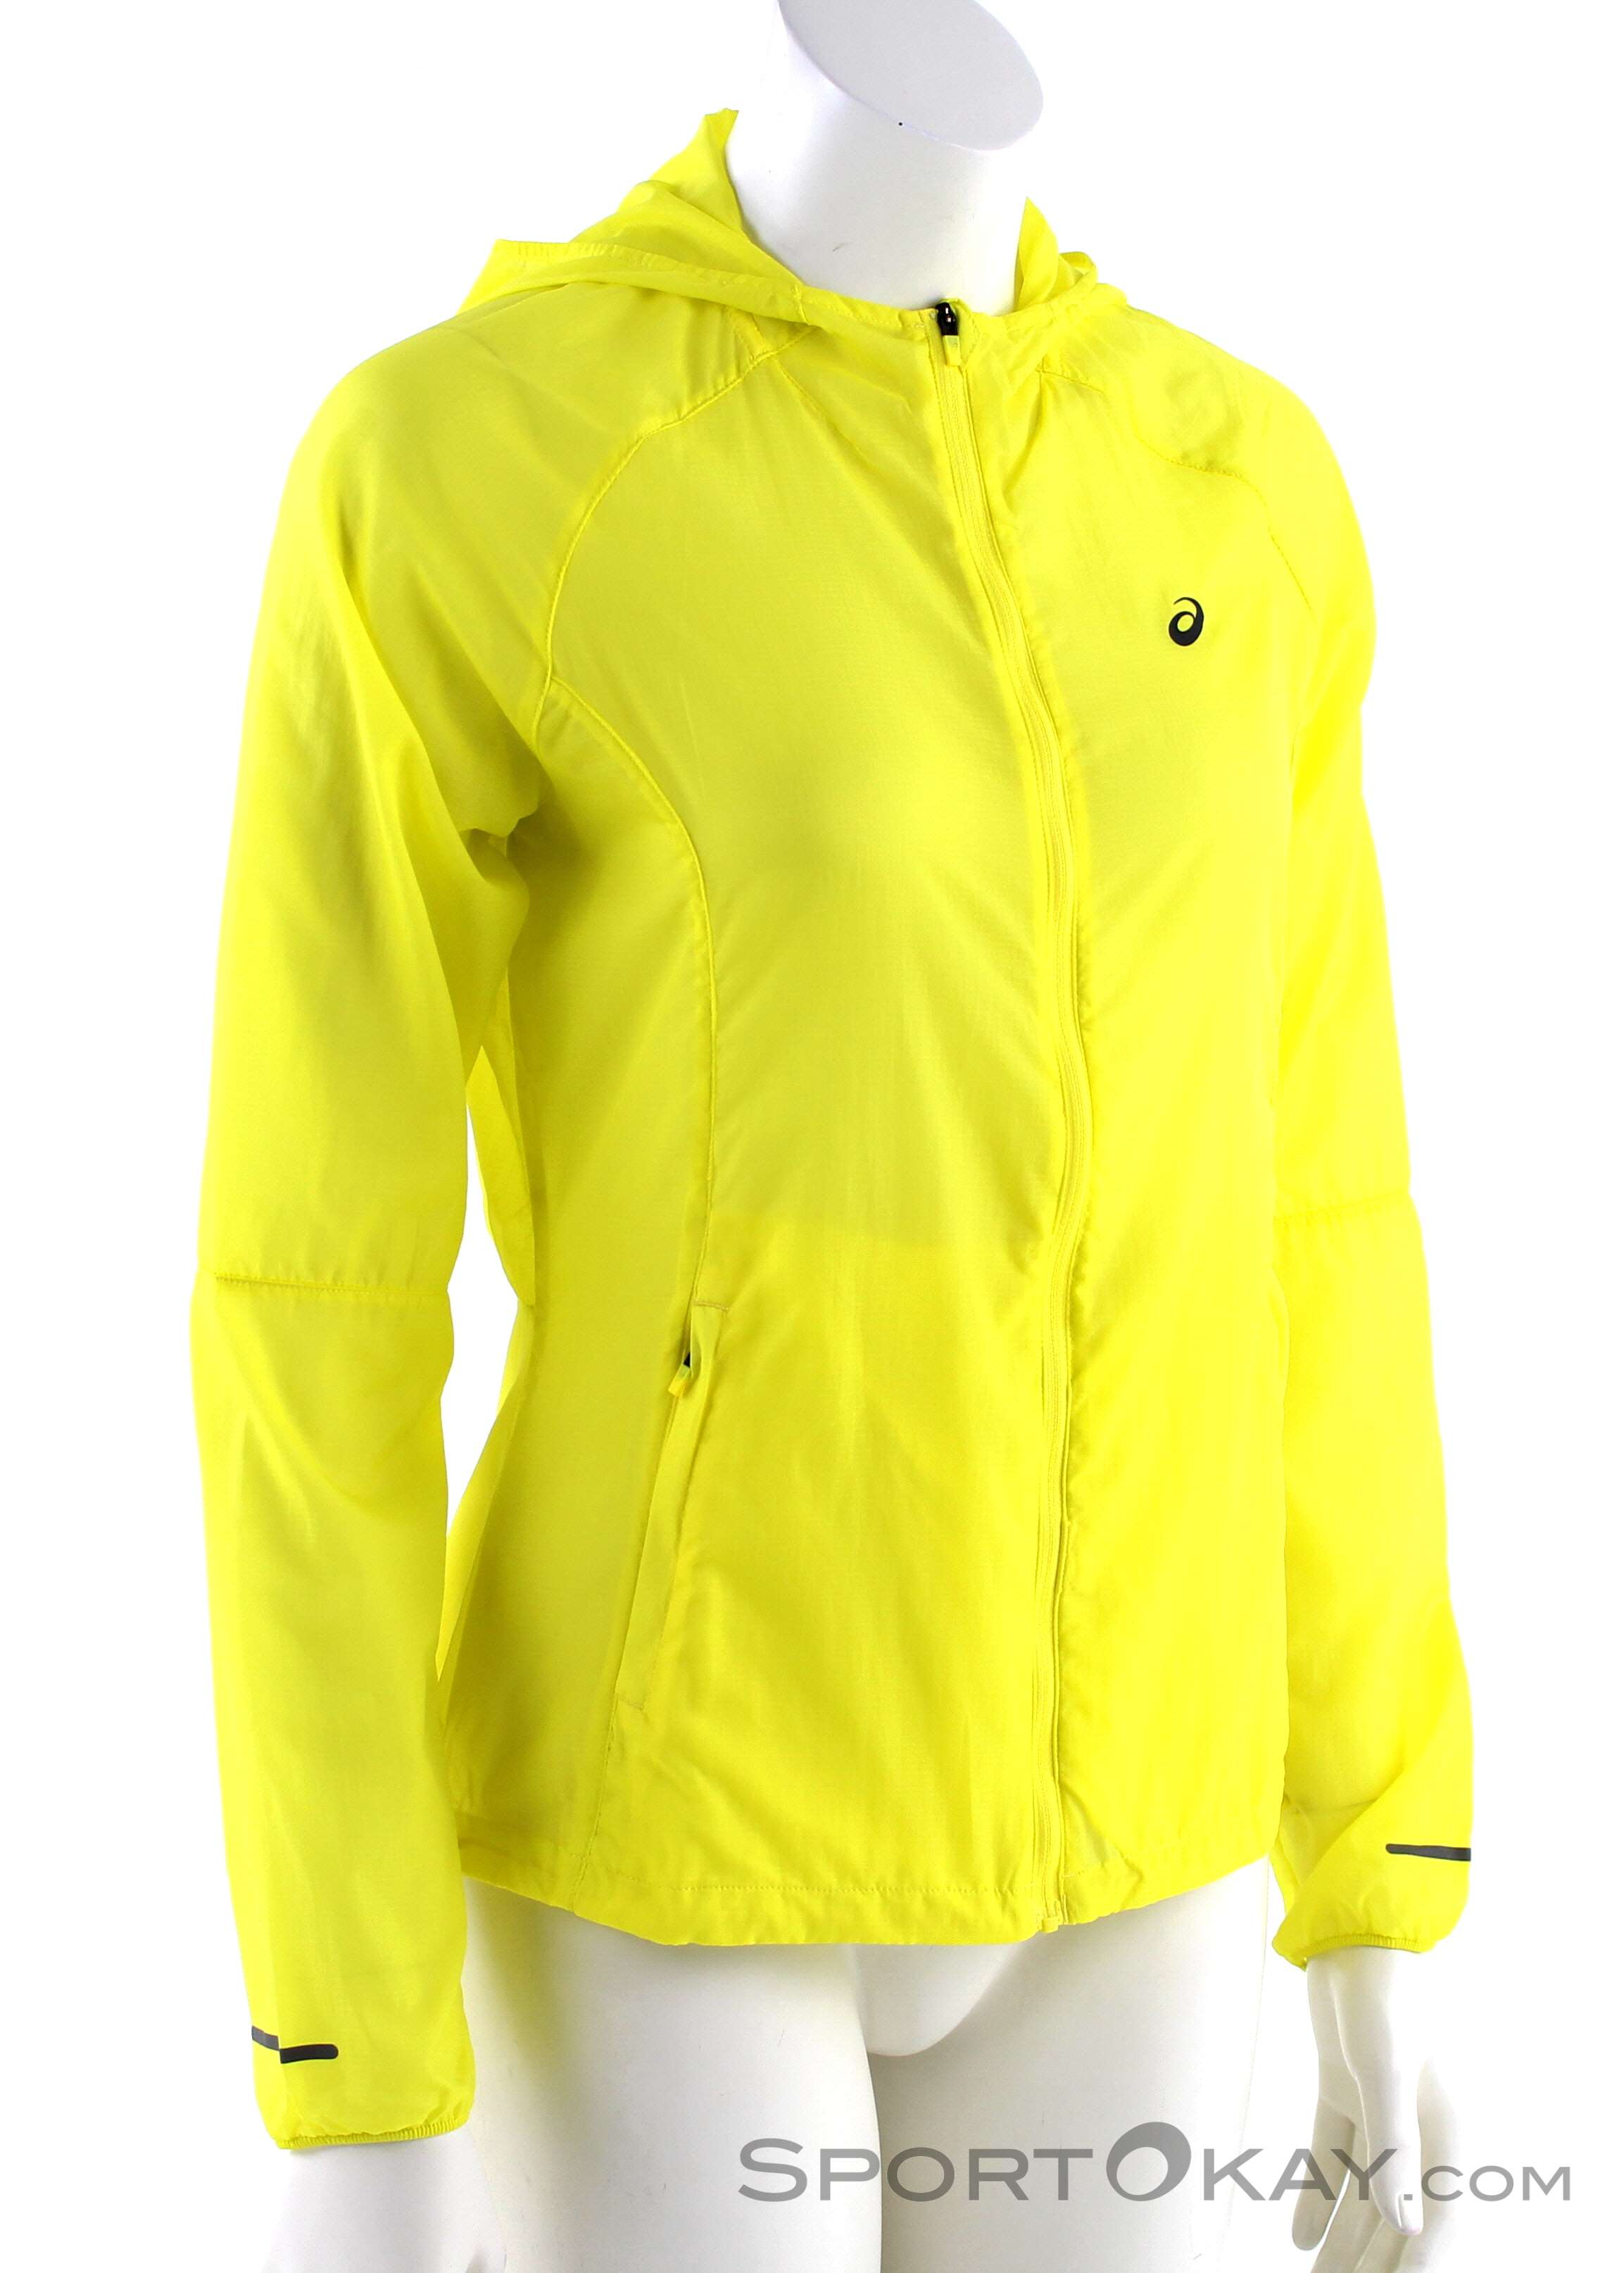 burbuja Huerta Grave  Asics Packable Womens Outdoor Jacket - Jackets - Outdoor Clothing - Outdoor  - All